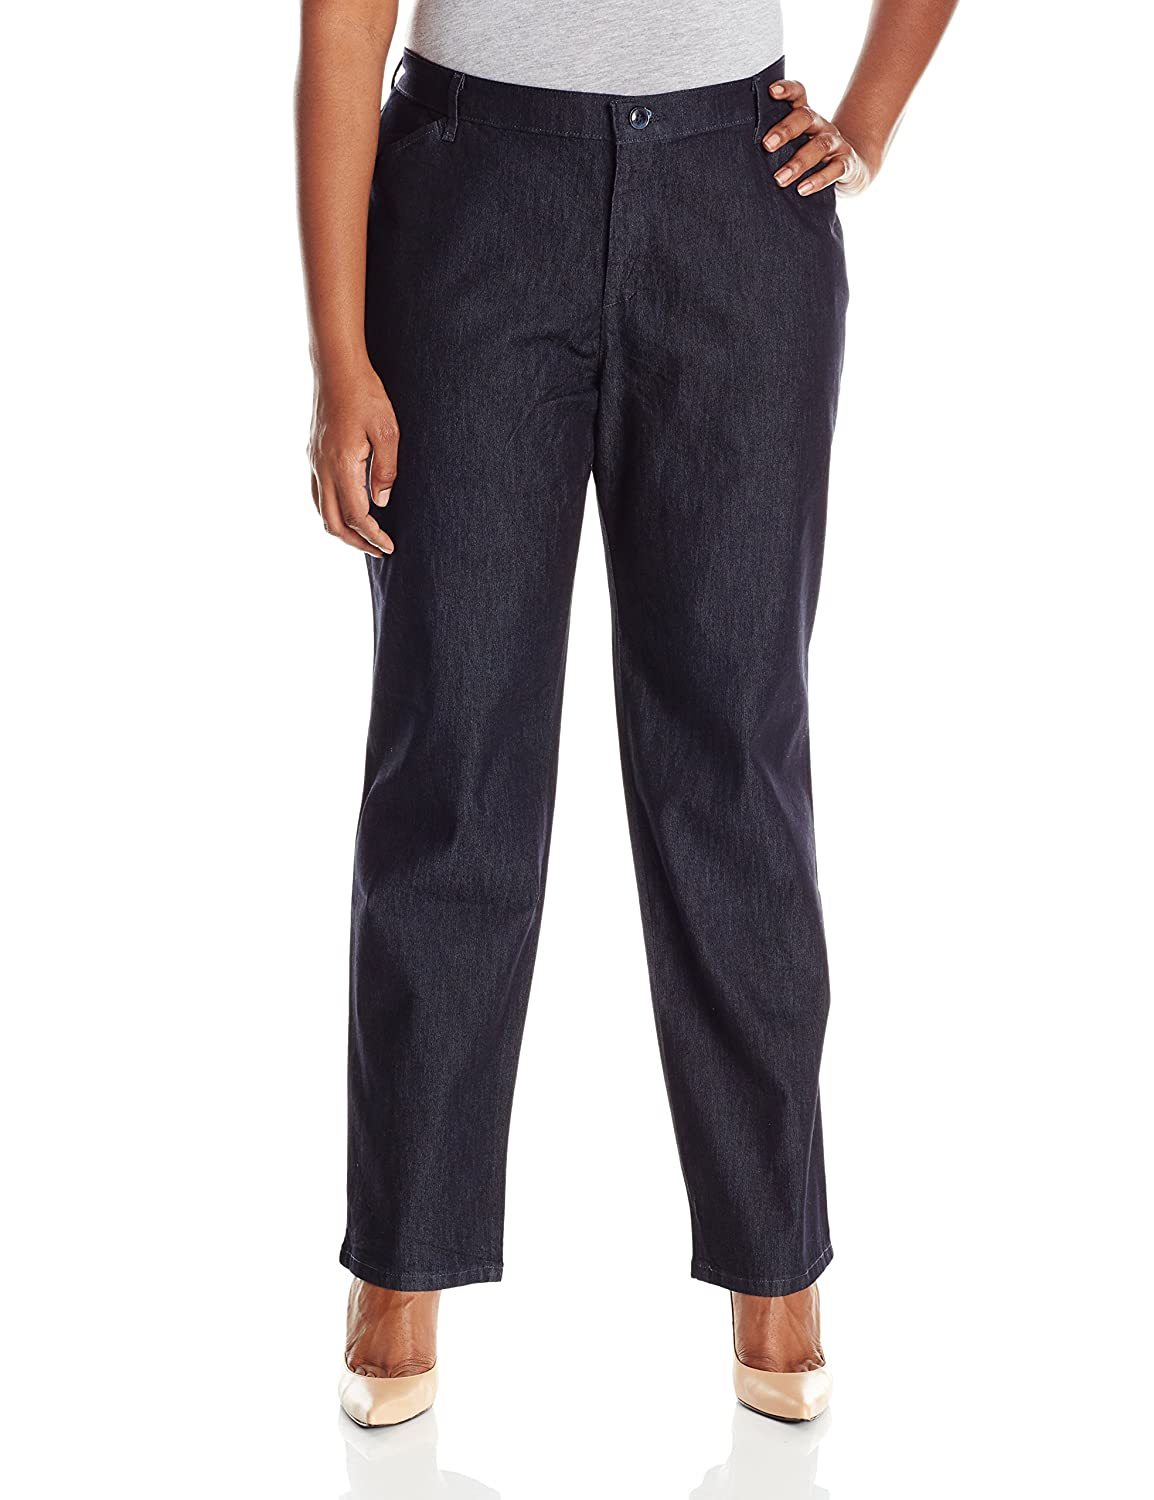 LEE Women's Plus Size Relaxed Fit All Day Straight Leg Pant Lee Women's Collection P000510446